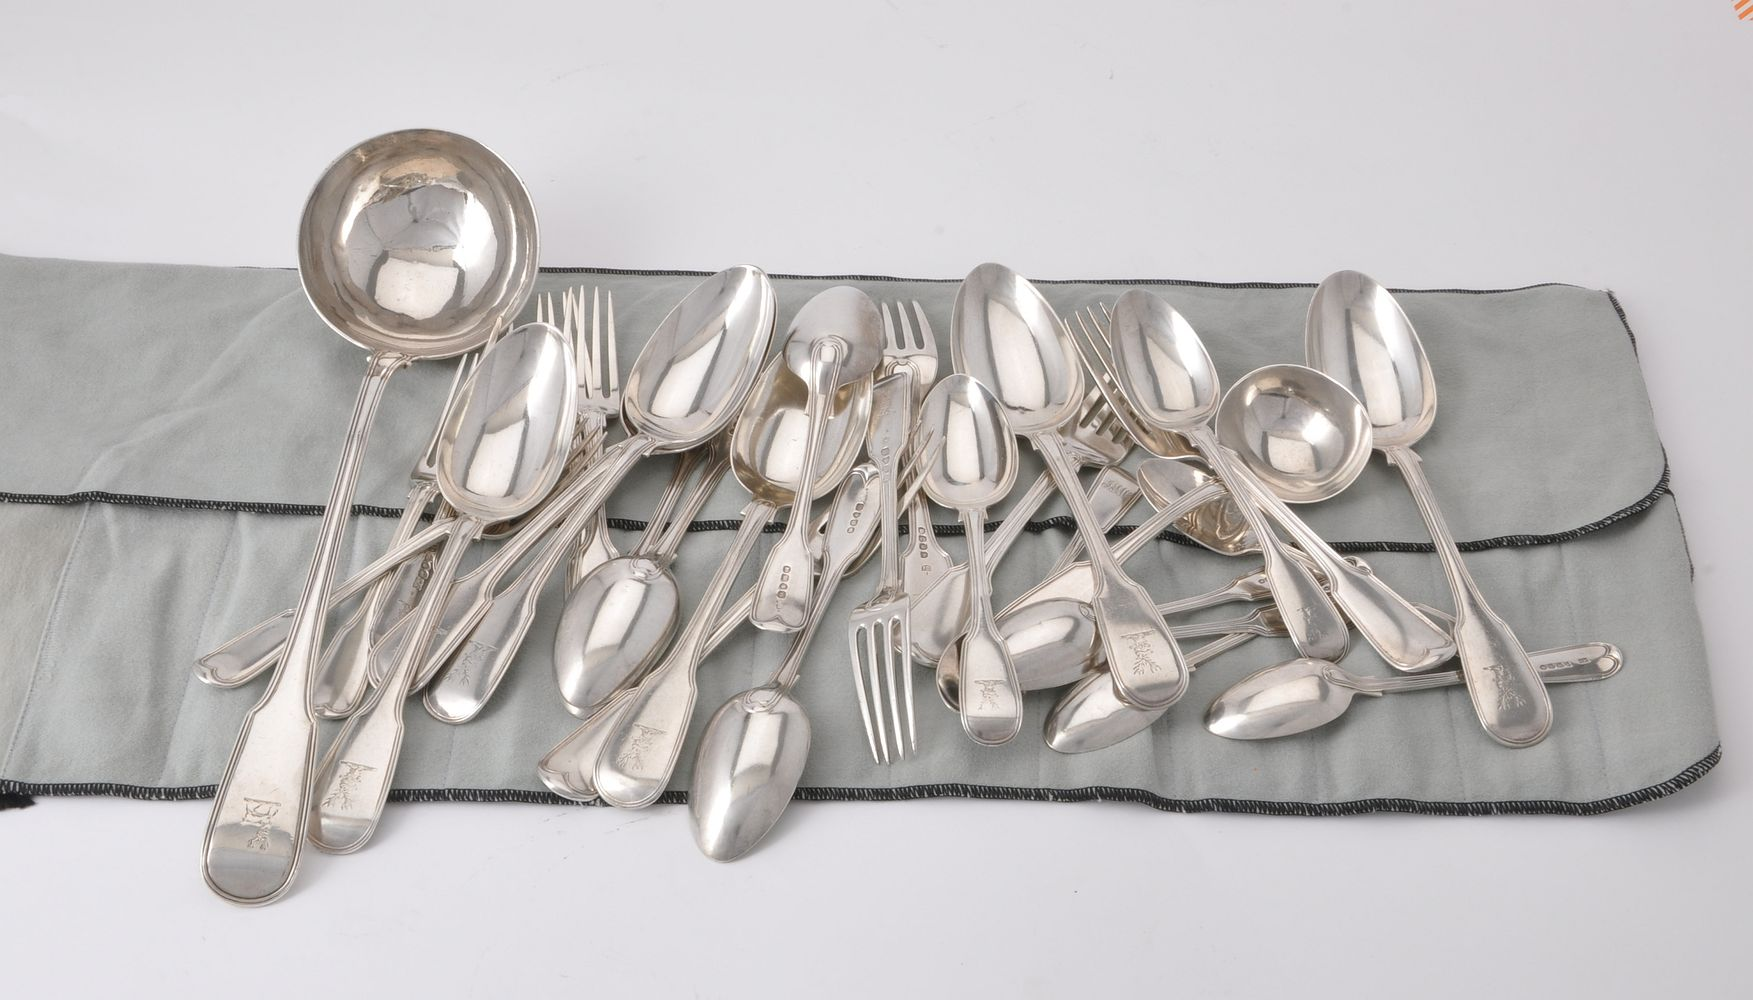 A matched silver fiddle and thread pattern table service for six